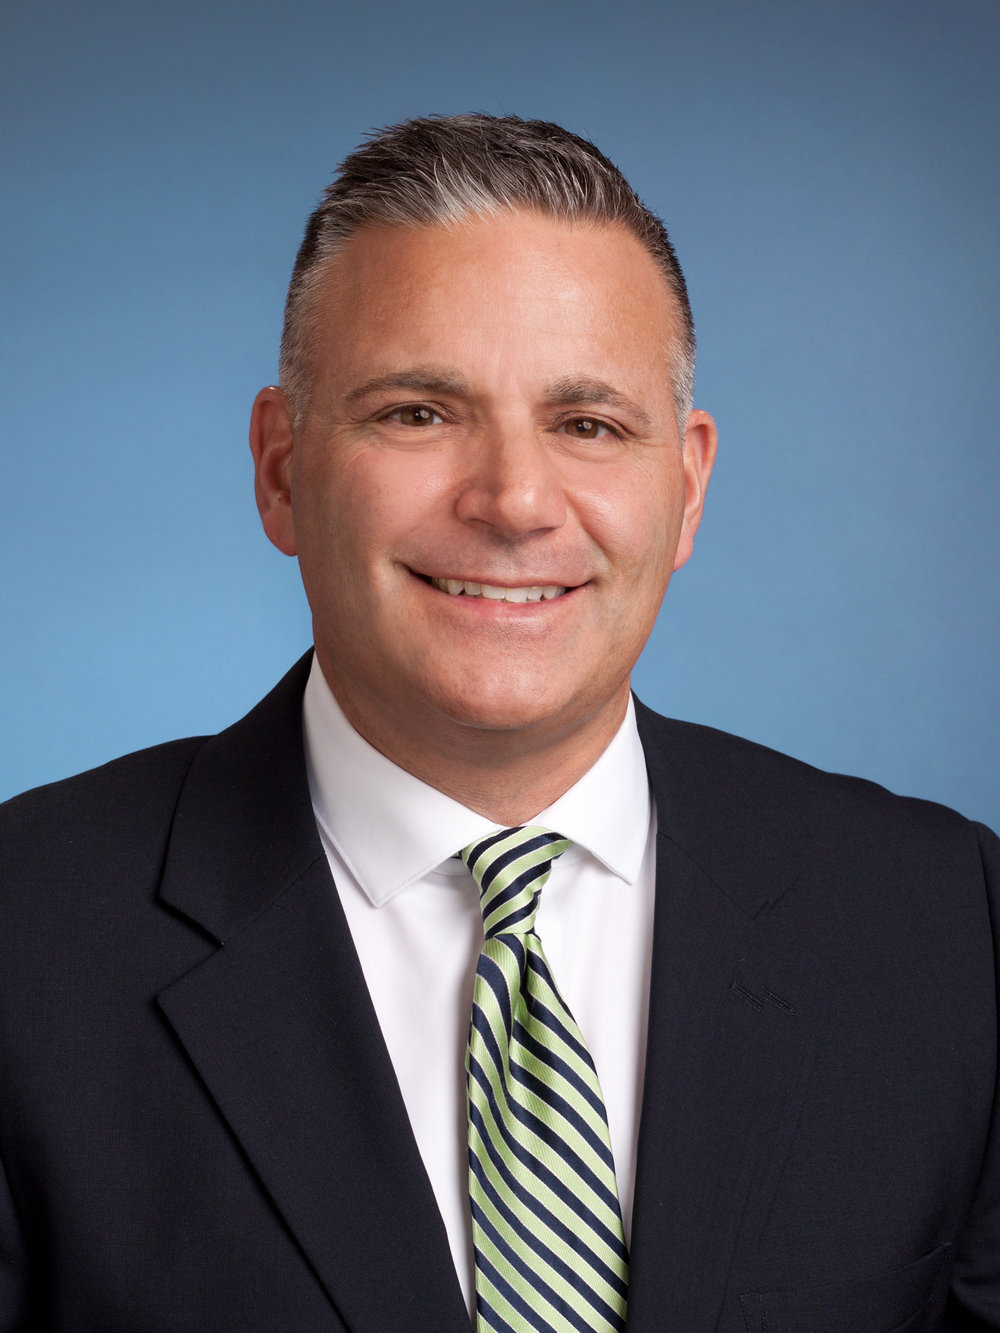 Joe DiBitetto - Director of Business Development